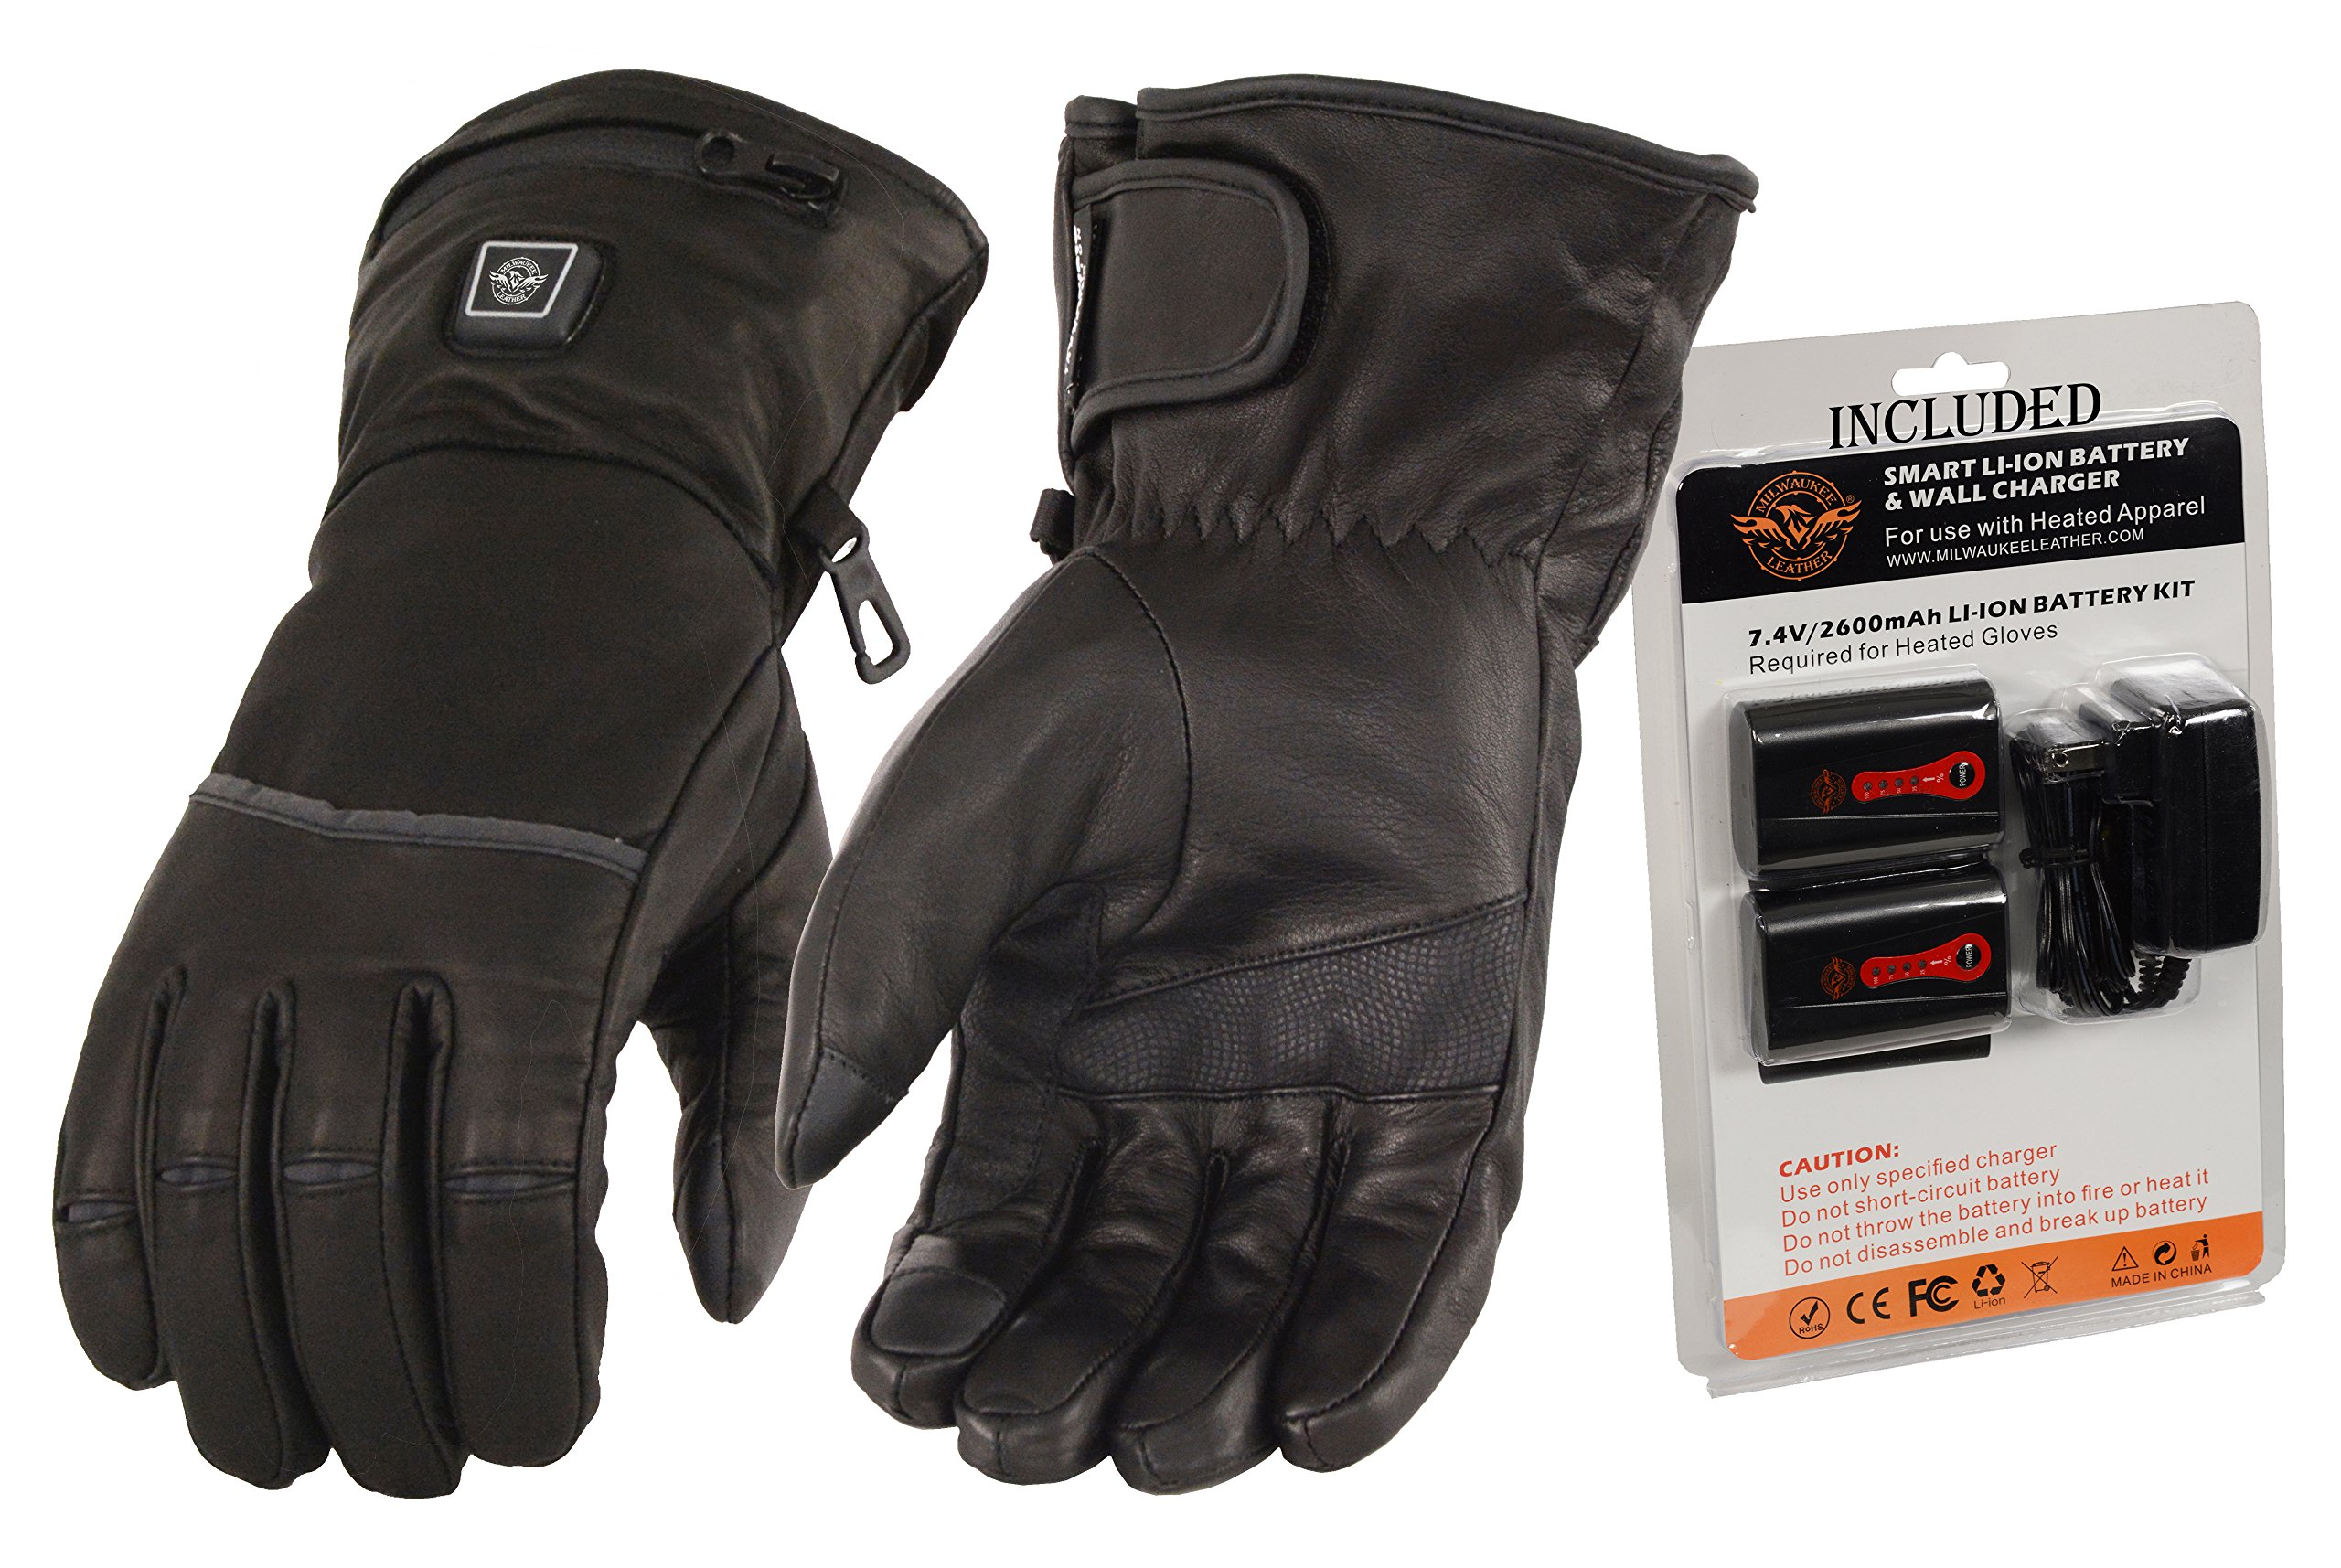 Milwaukee Leather-Men's Heated Gantlet Glove w/Touch screen-BATTERY PACK INCLUDED-BLACK-MEDIUM